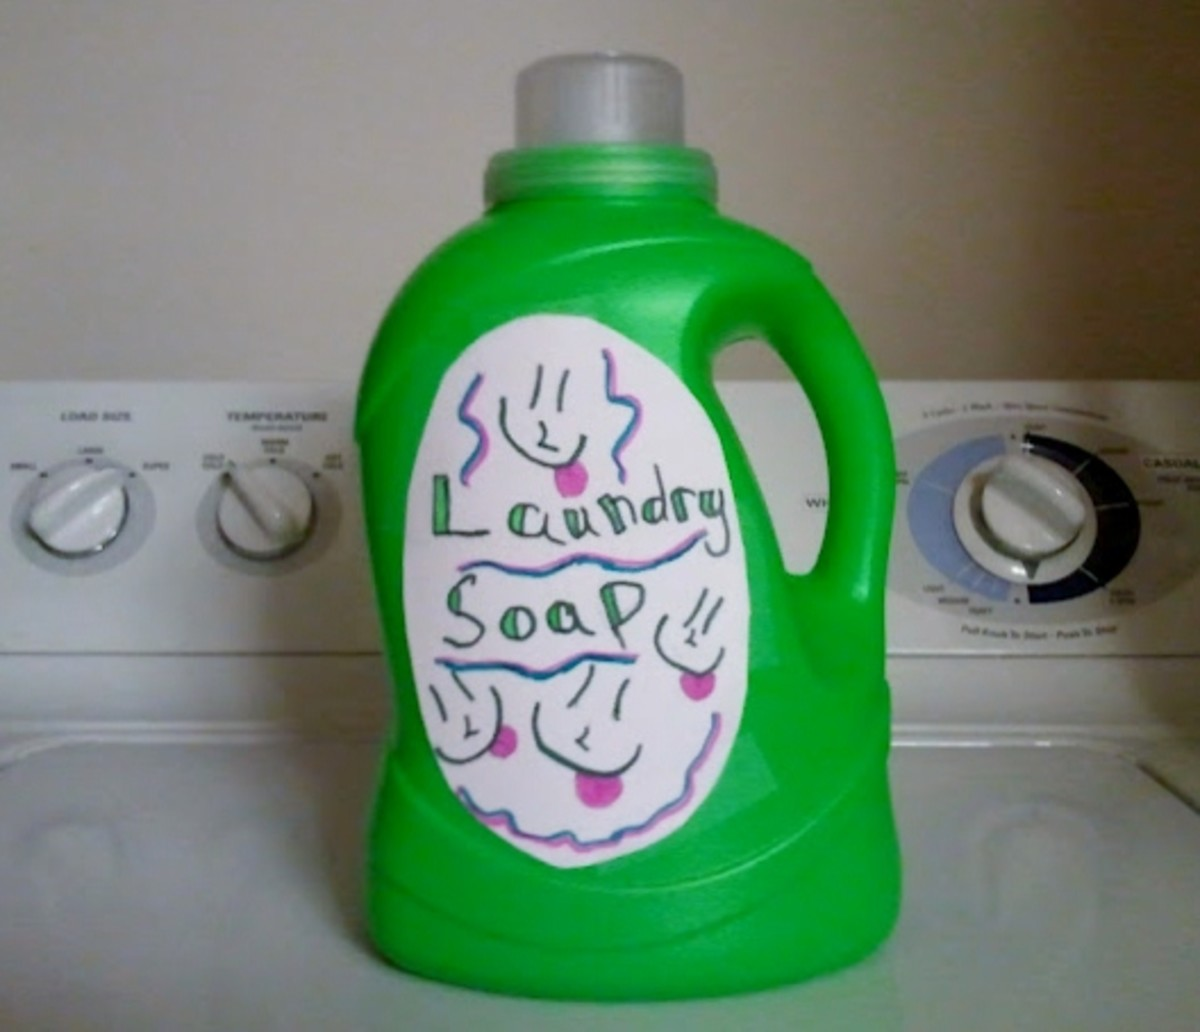 How Well Does Homemade Laundry Soap Really Work?